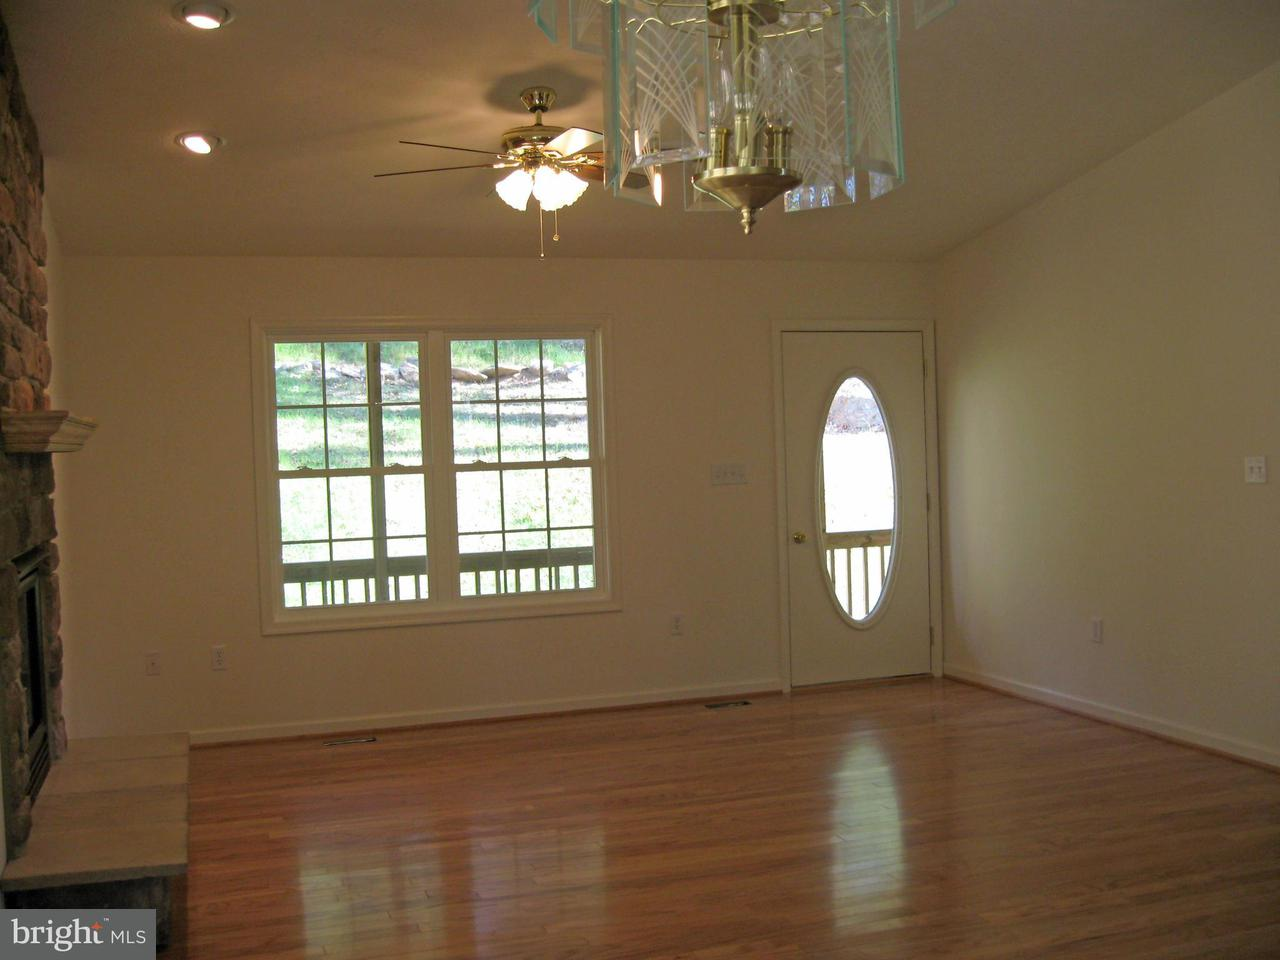 Additional photo for property listing at 196 Heim-Jones Rd  Linden, Virginia 22642 United States